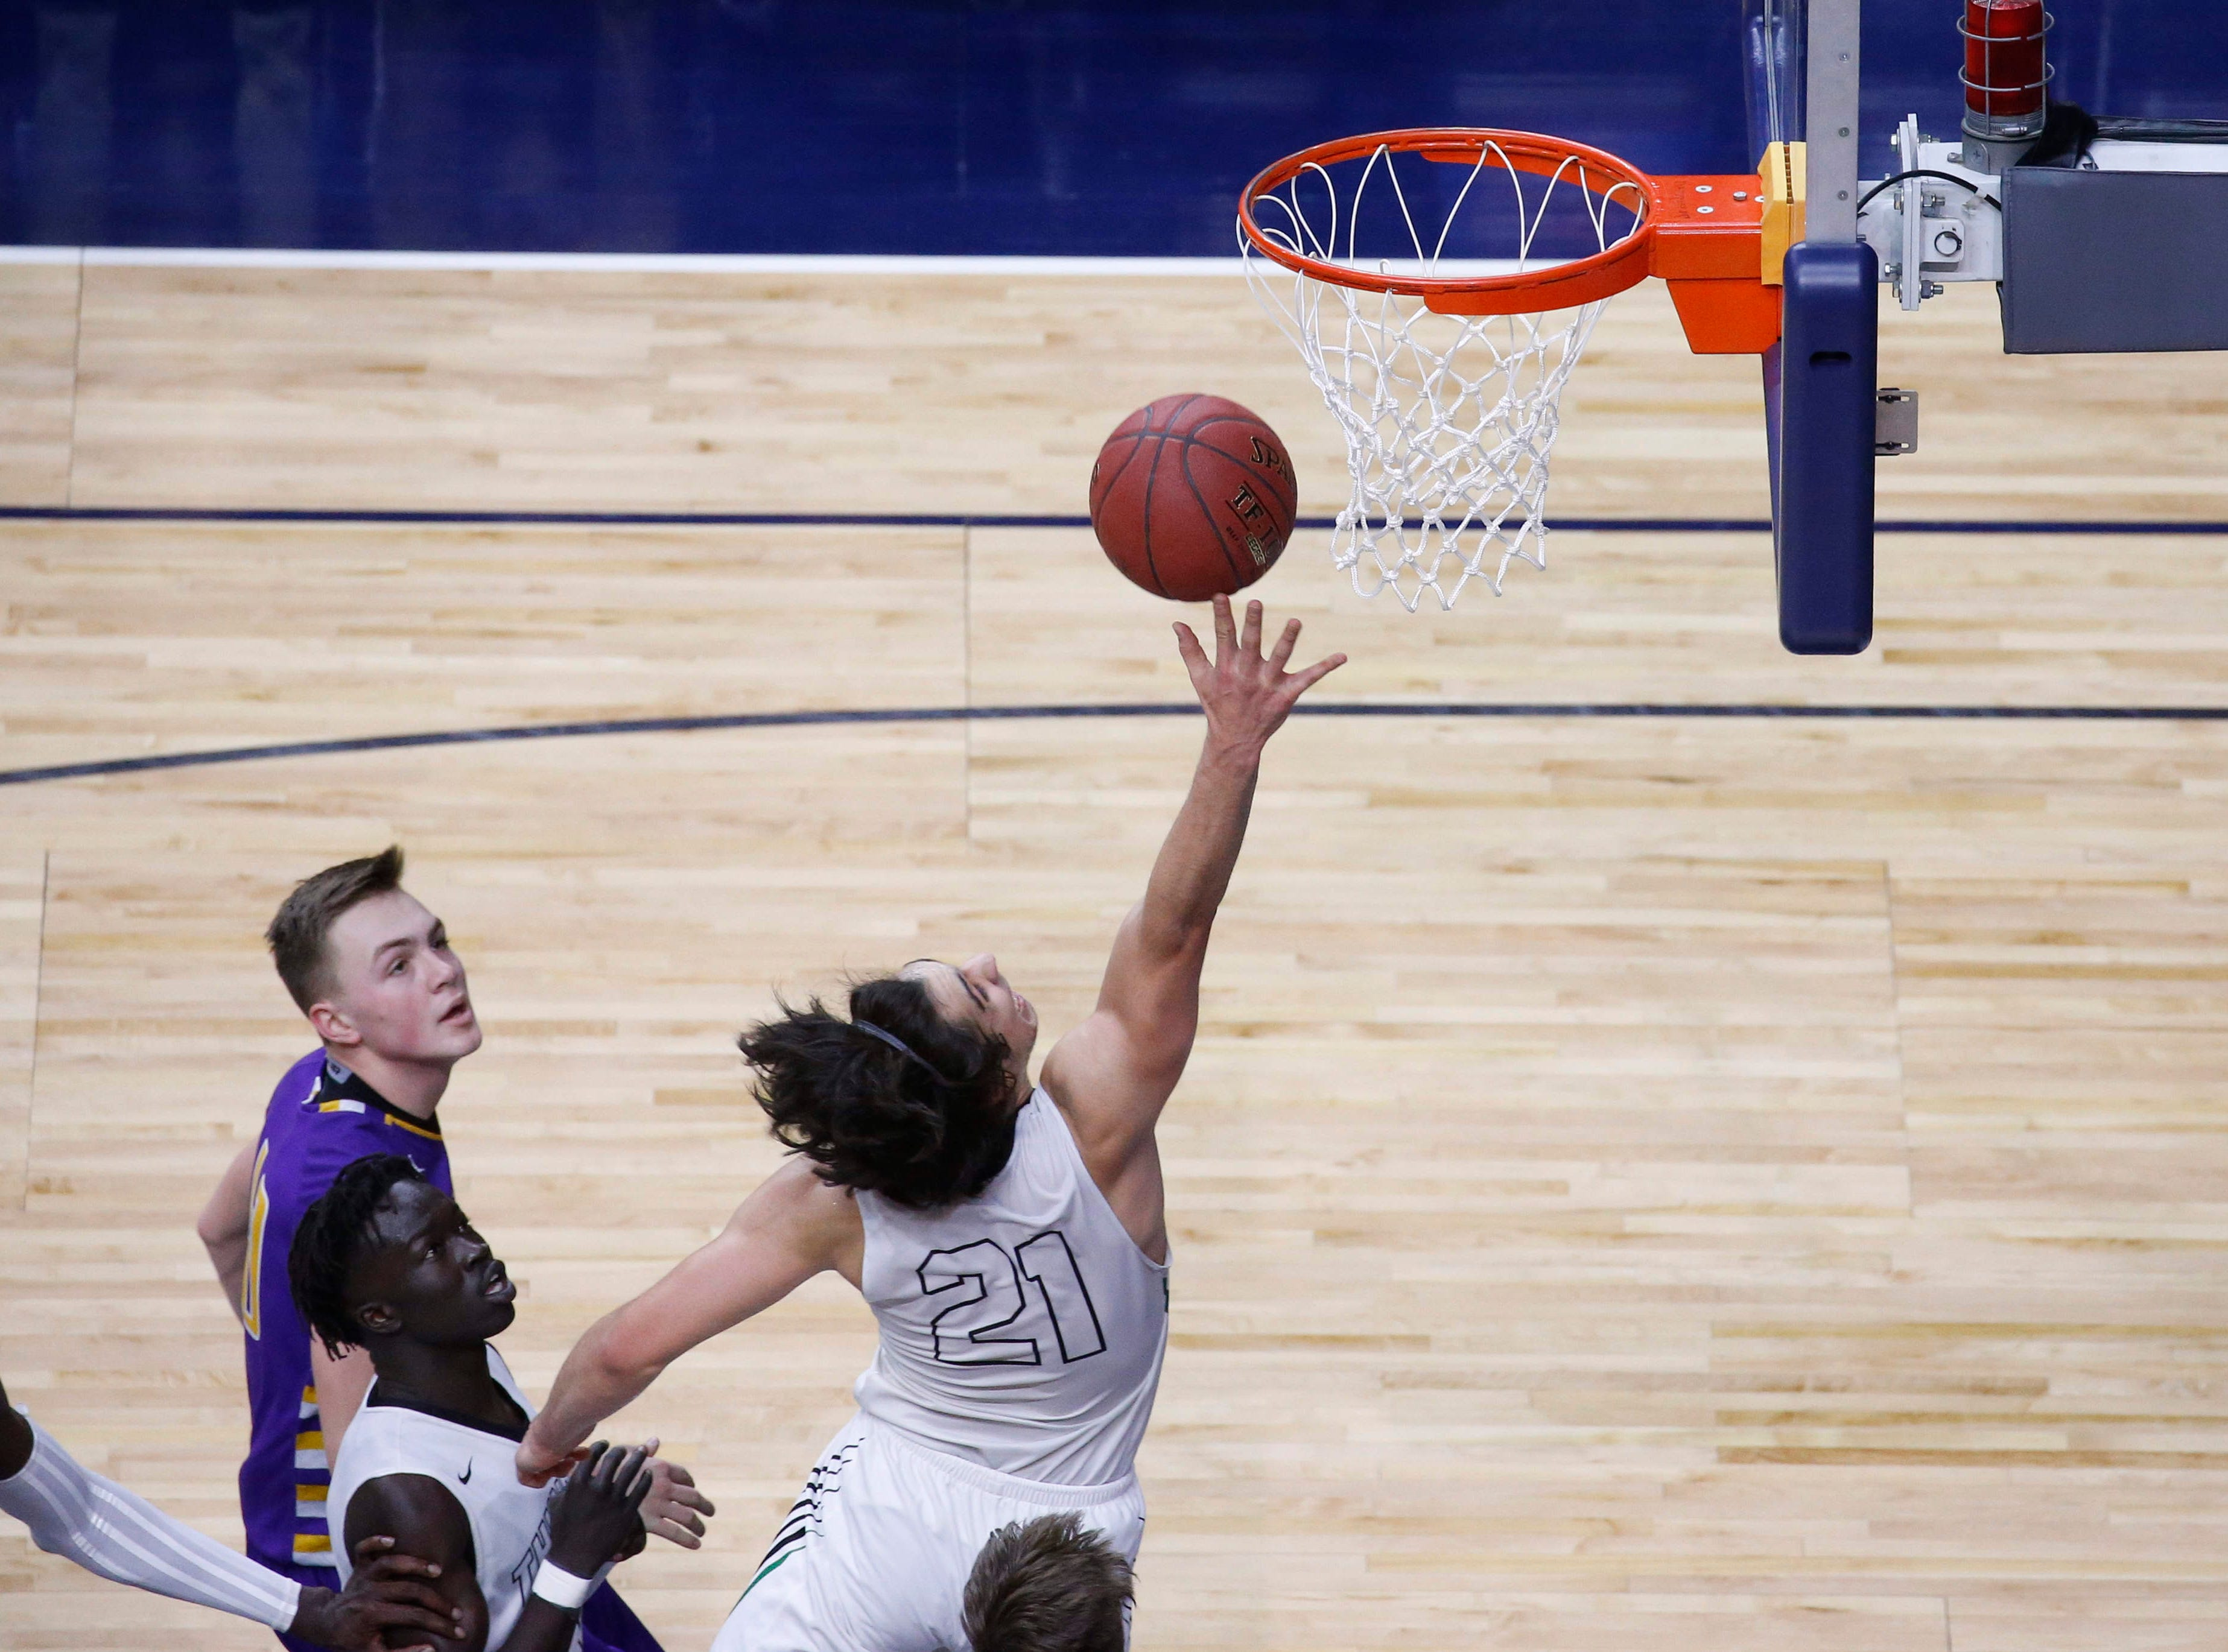 Grand View Christian senior Arturo Montes drives the lane against Alburnett in the first quarter during the Class 1A boys state basketball championship game on Friday, March 8, 2019, at Wells Fargo Arena in Des Moines.